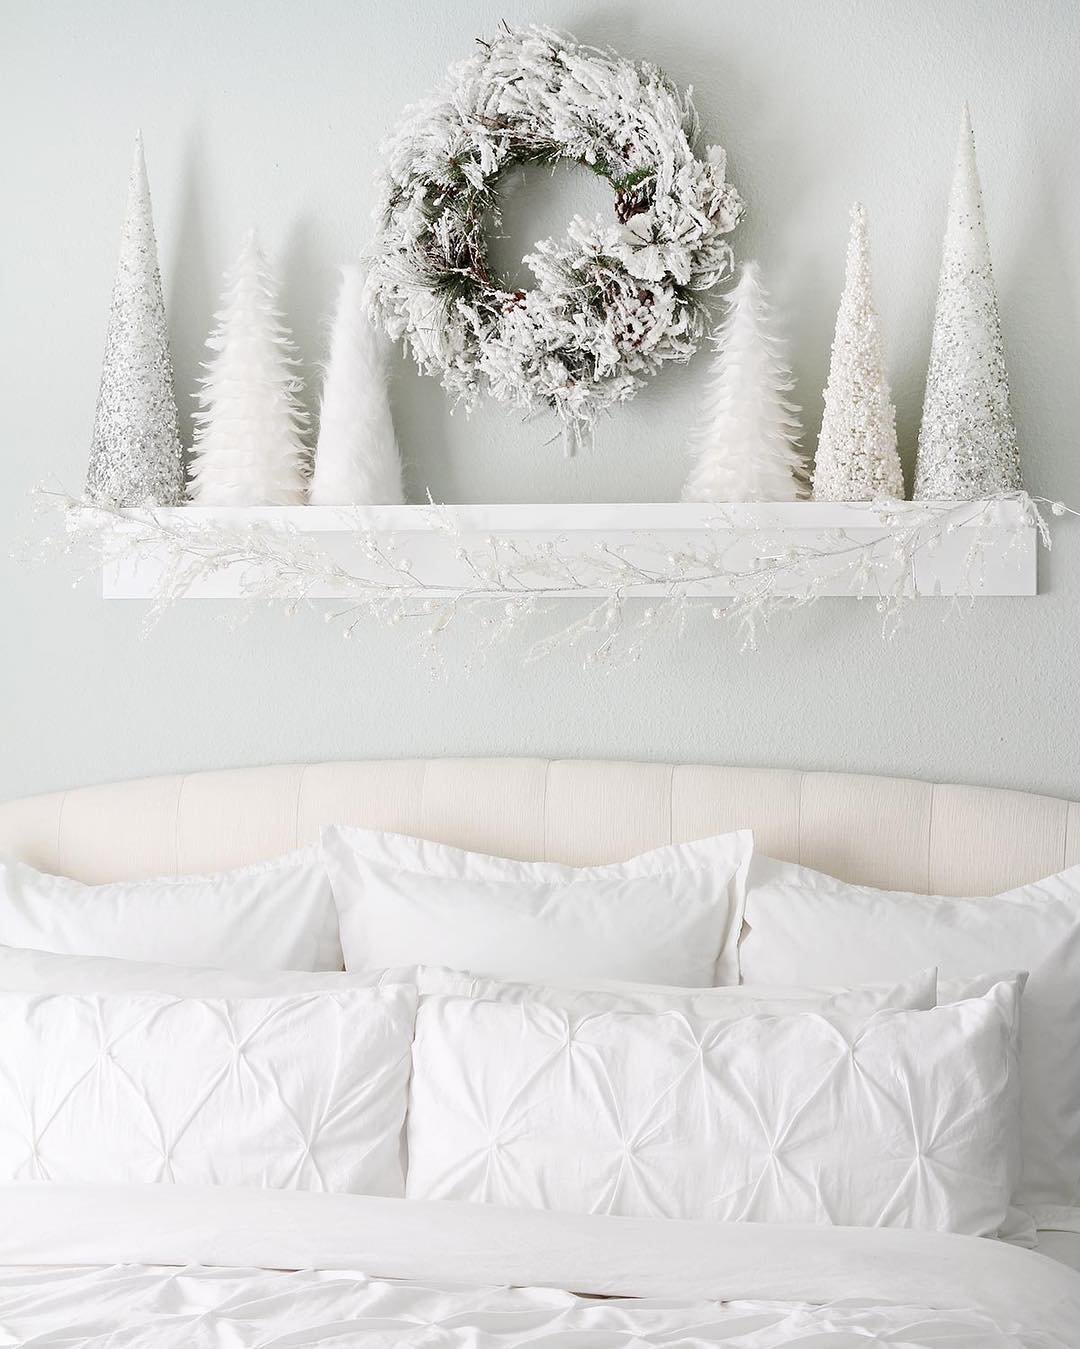 Rocking White Bedroom Decor With White Christmas Tree And Wreath